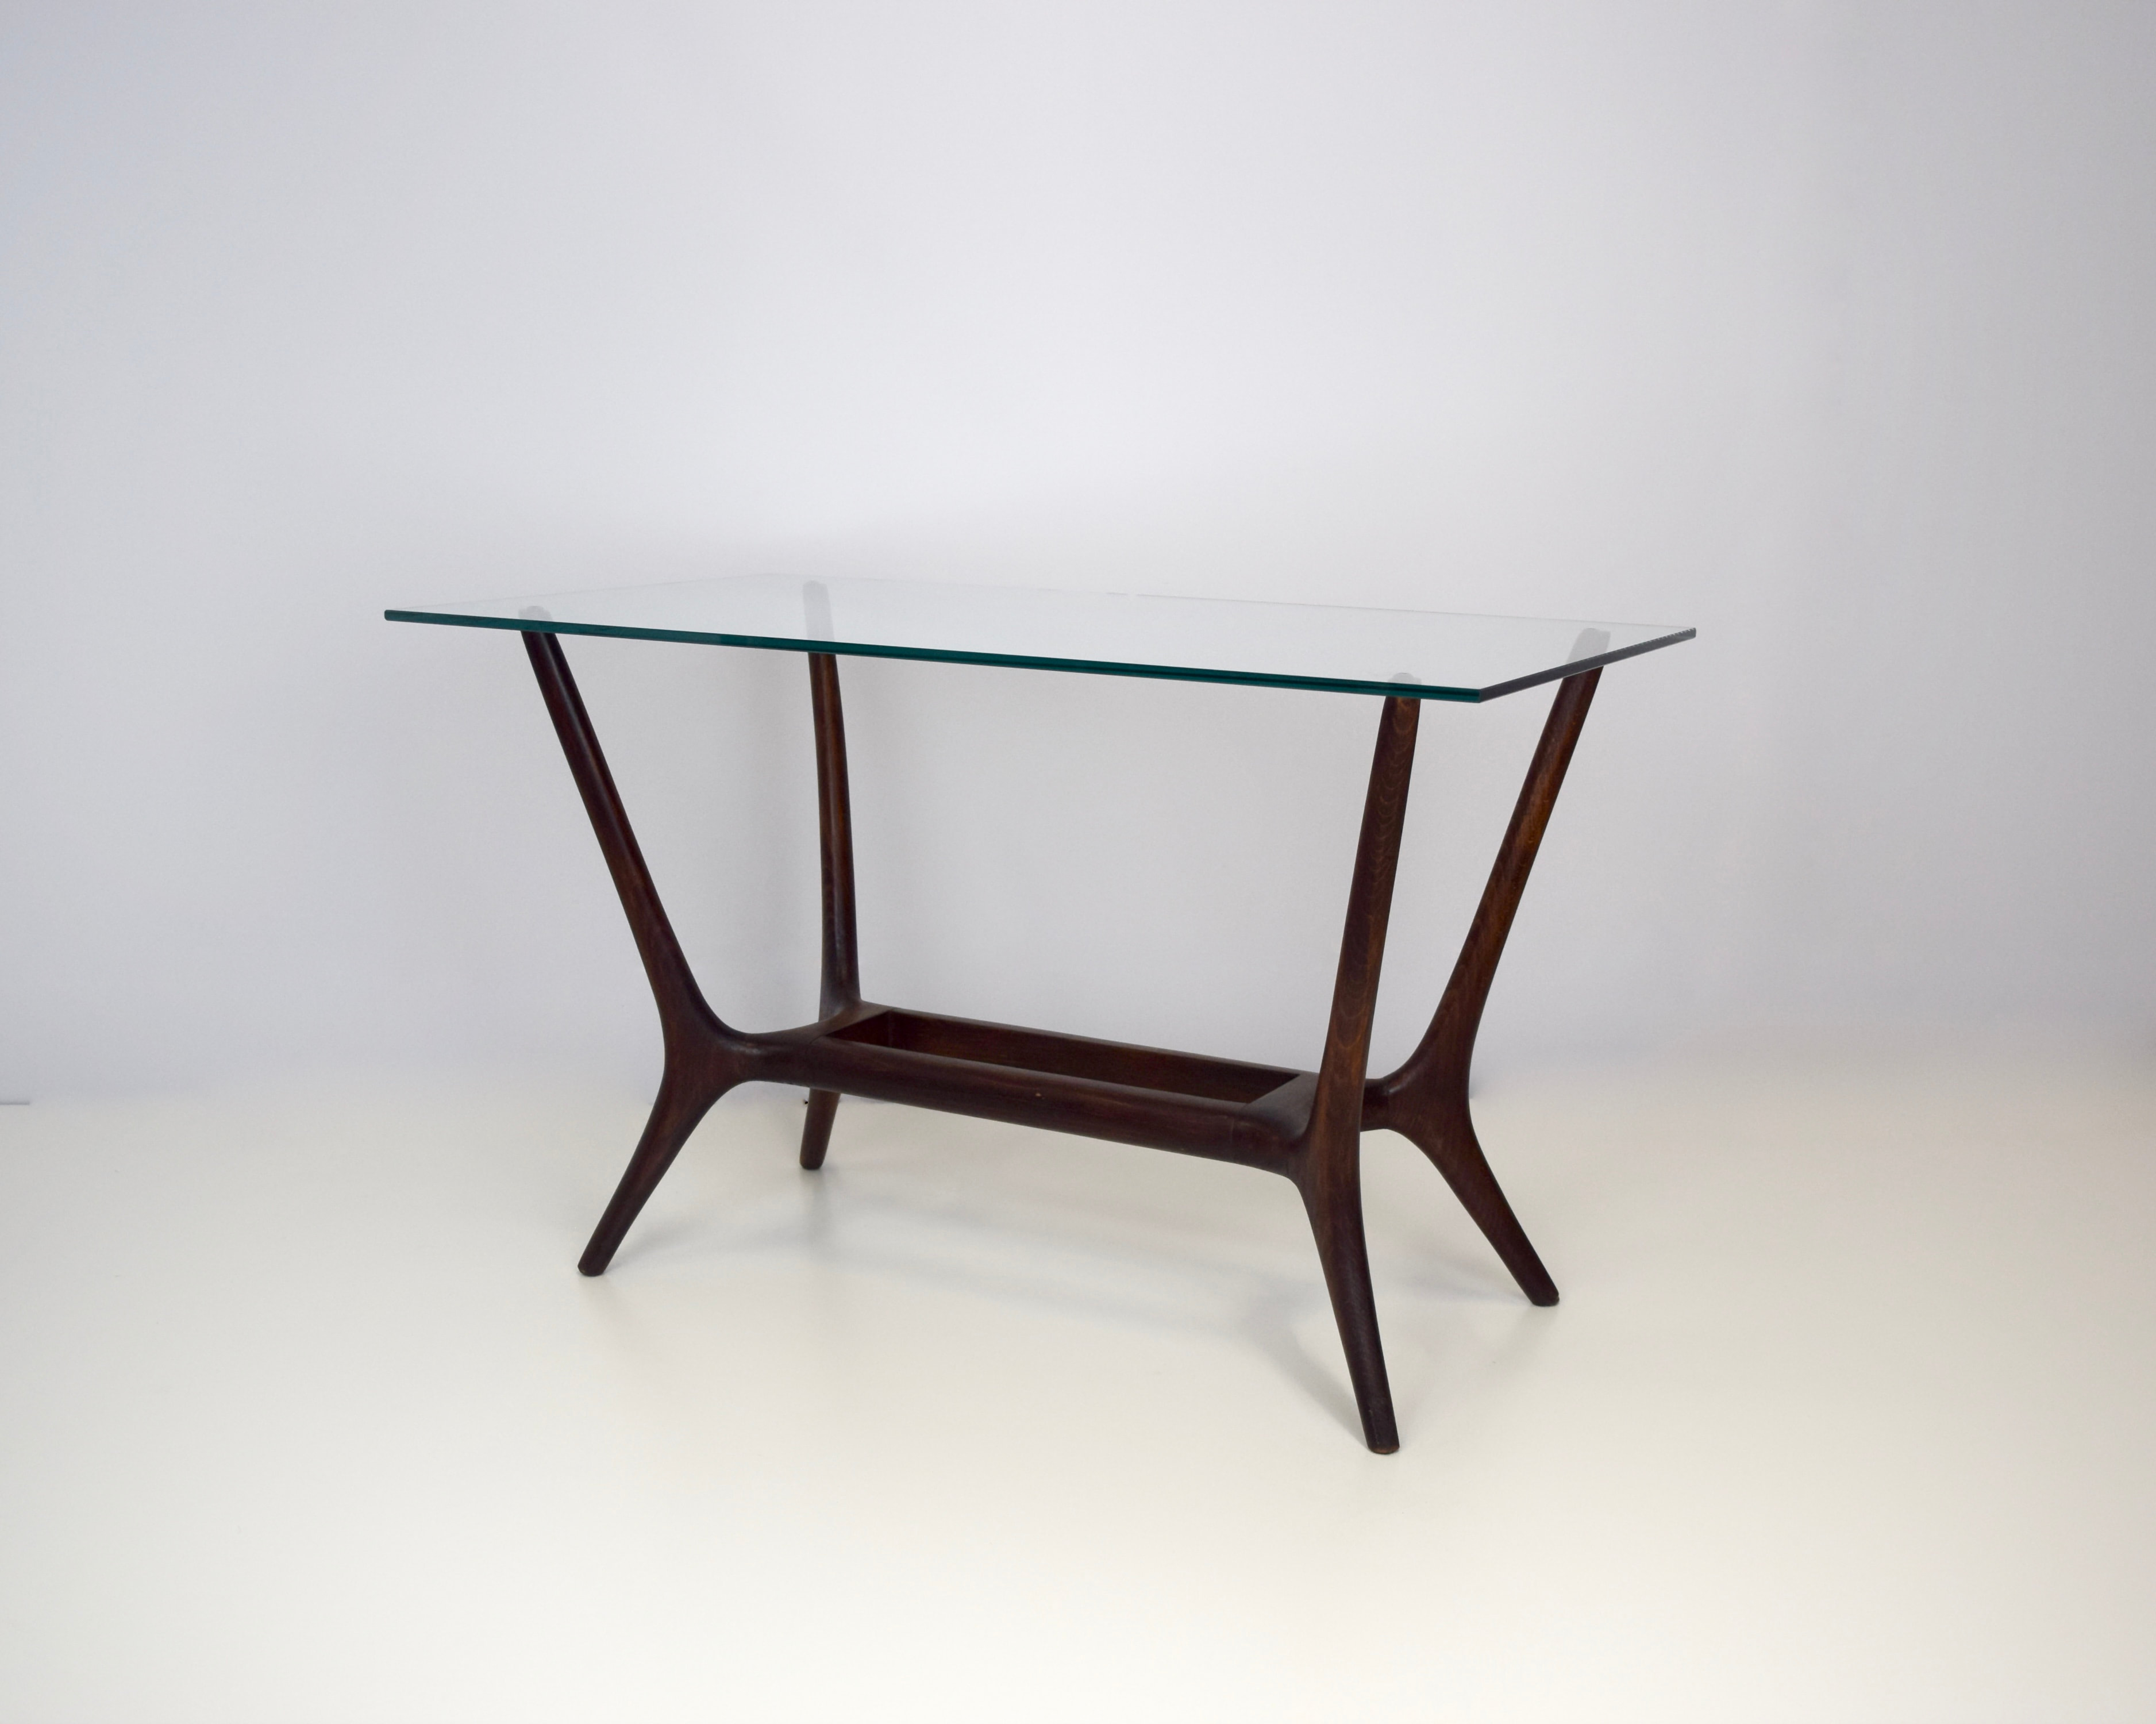 Italian Midcentury Modern Coffee Table in Mahogany and Glass, 1950's